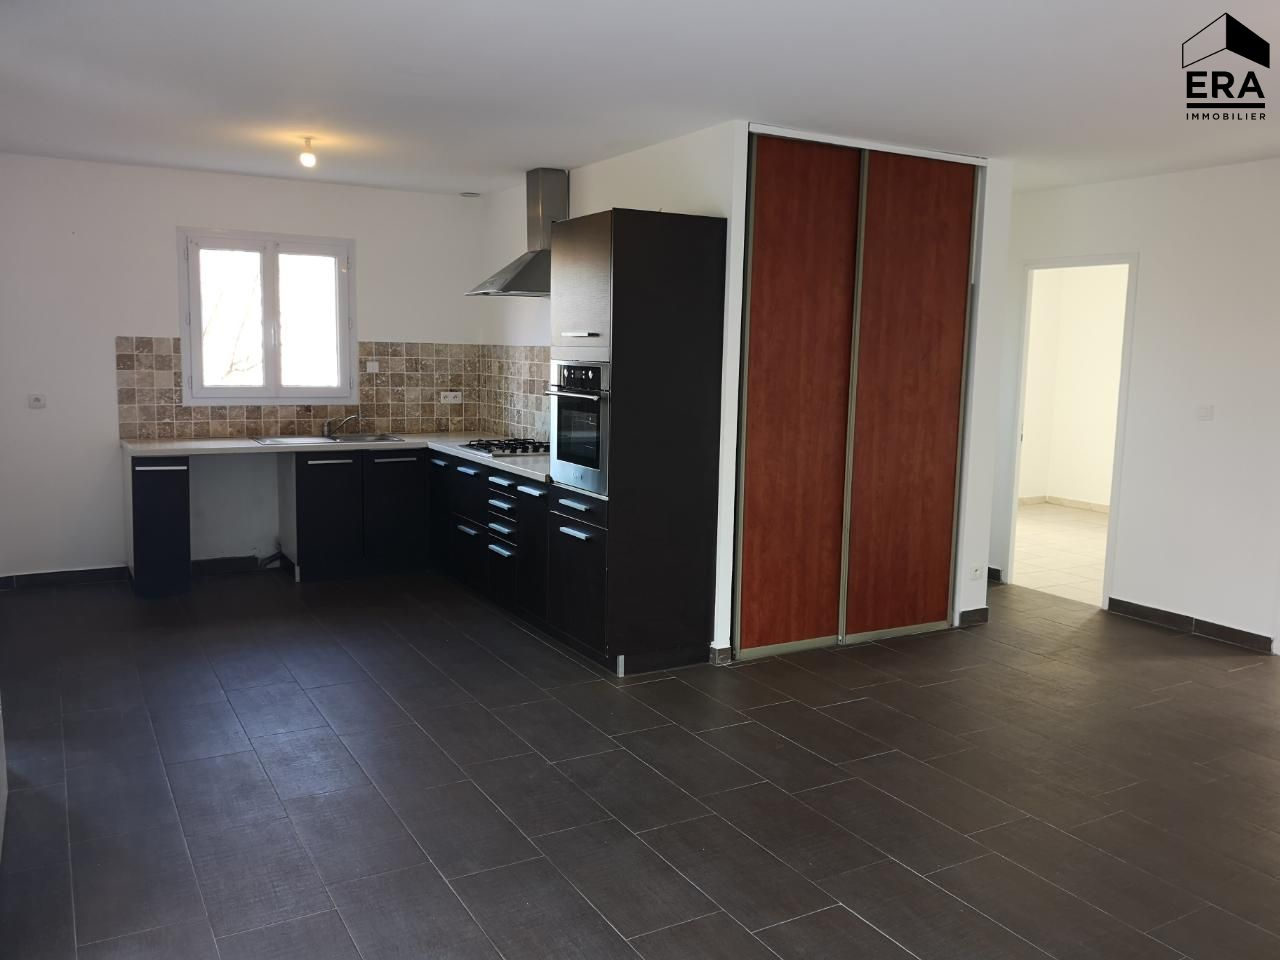 BORGO : appartement F3 (66 m²) en location